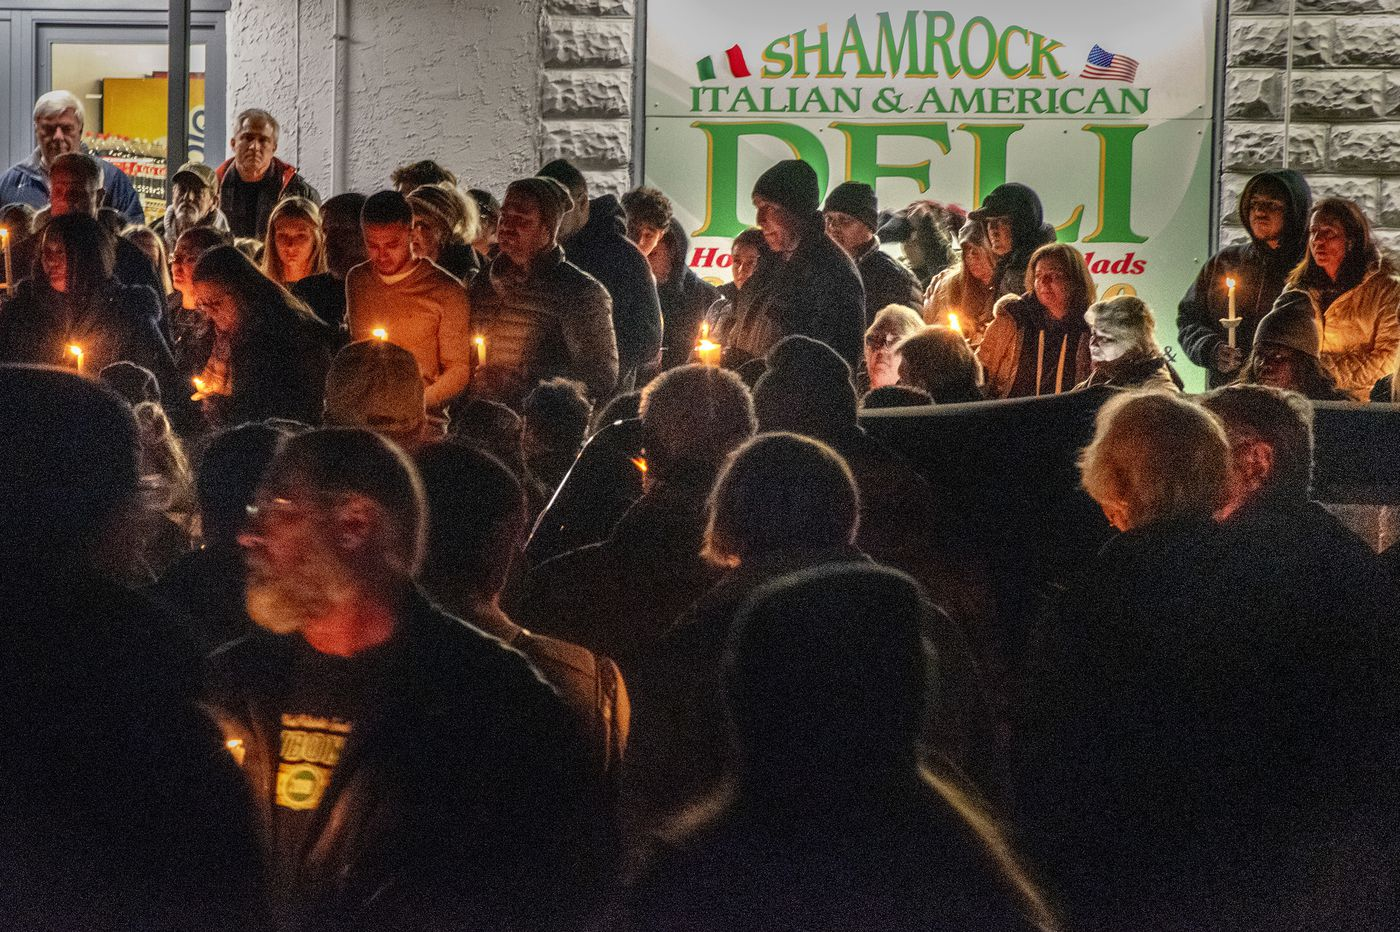 'He had a heart of gold,' friend of slain Shamrock Deli owner says as South Jersey store reopens